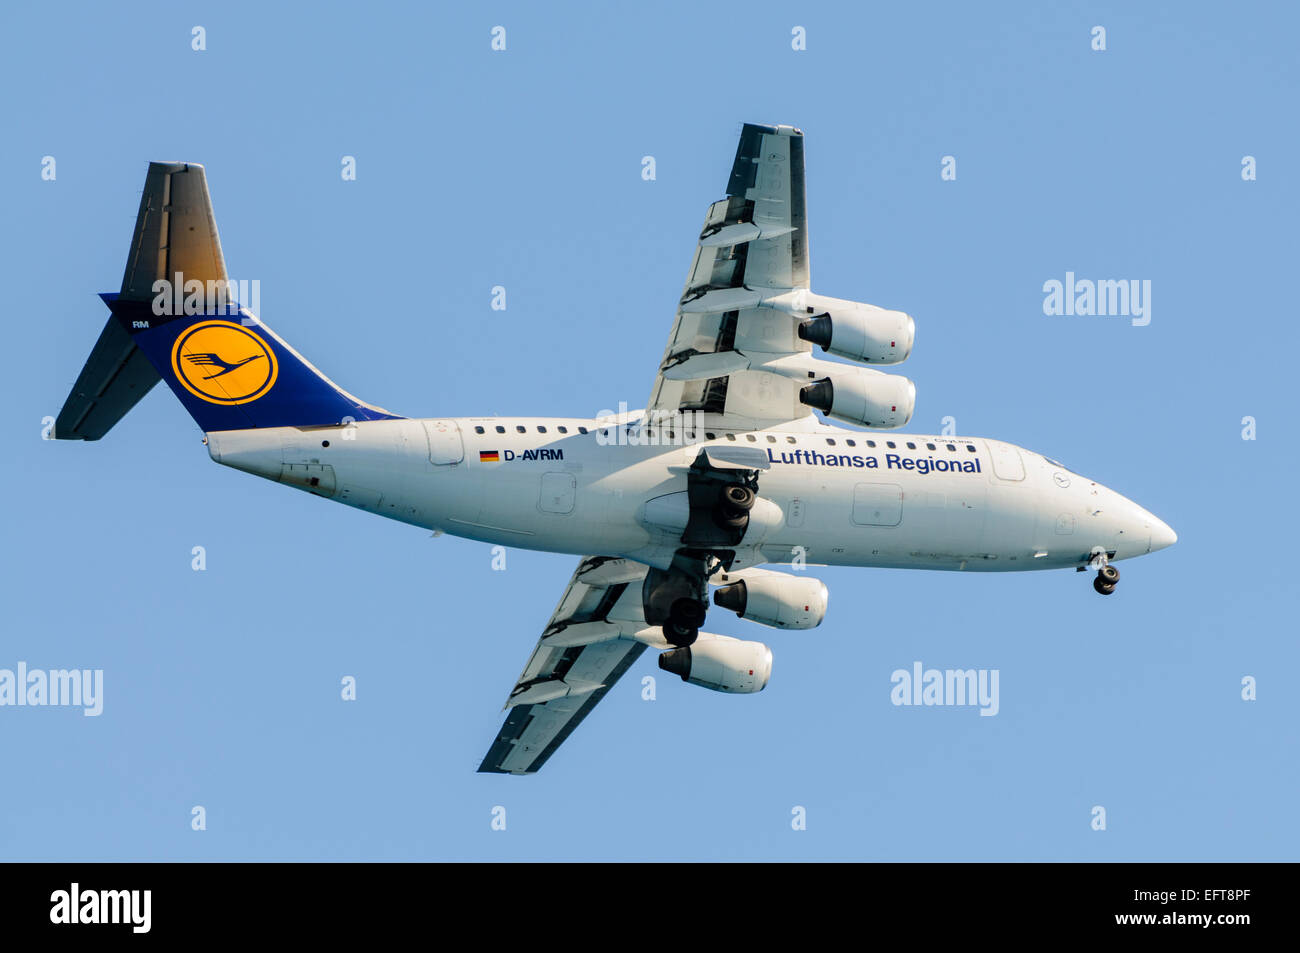 Lufthansa Regional CityLine Avro RJ85 with undercarriage lowered. - Stock Image